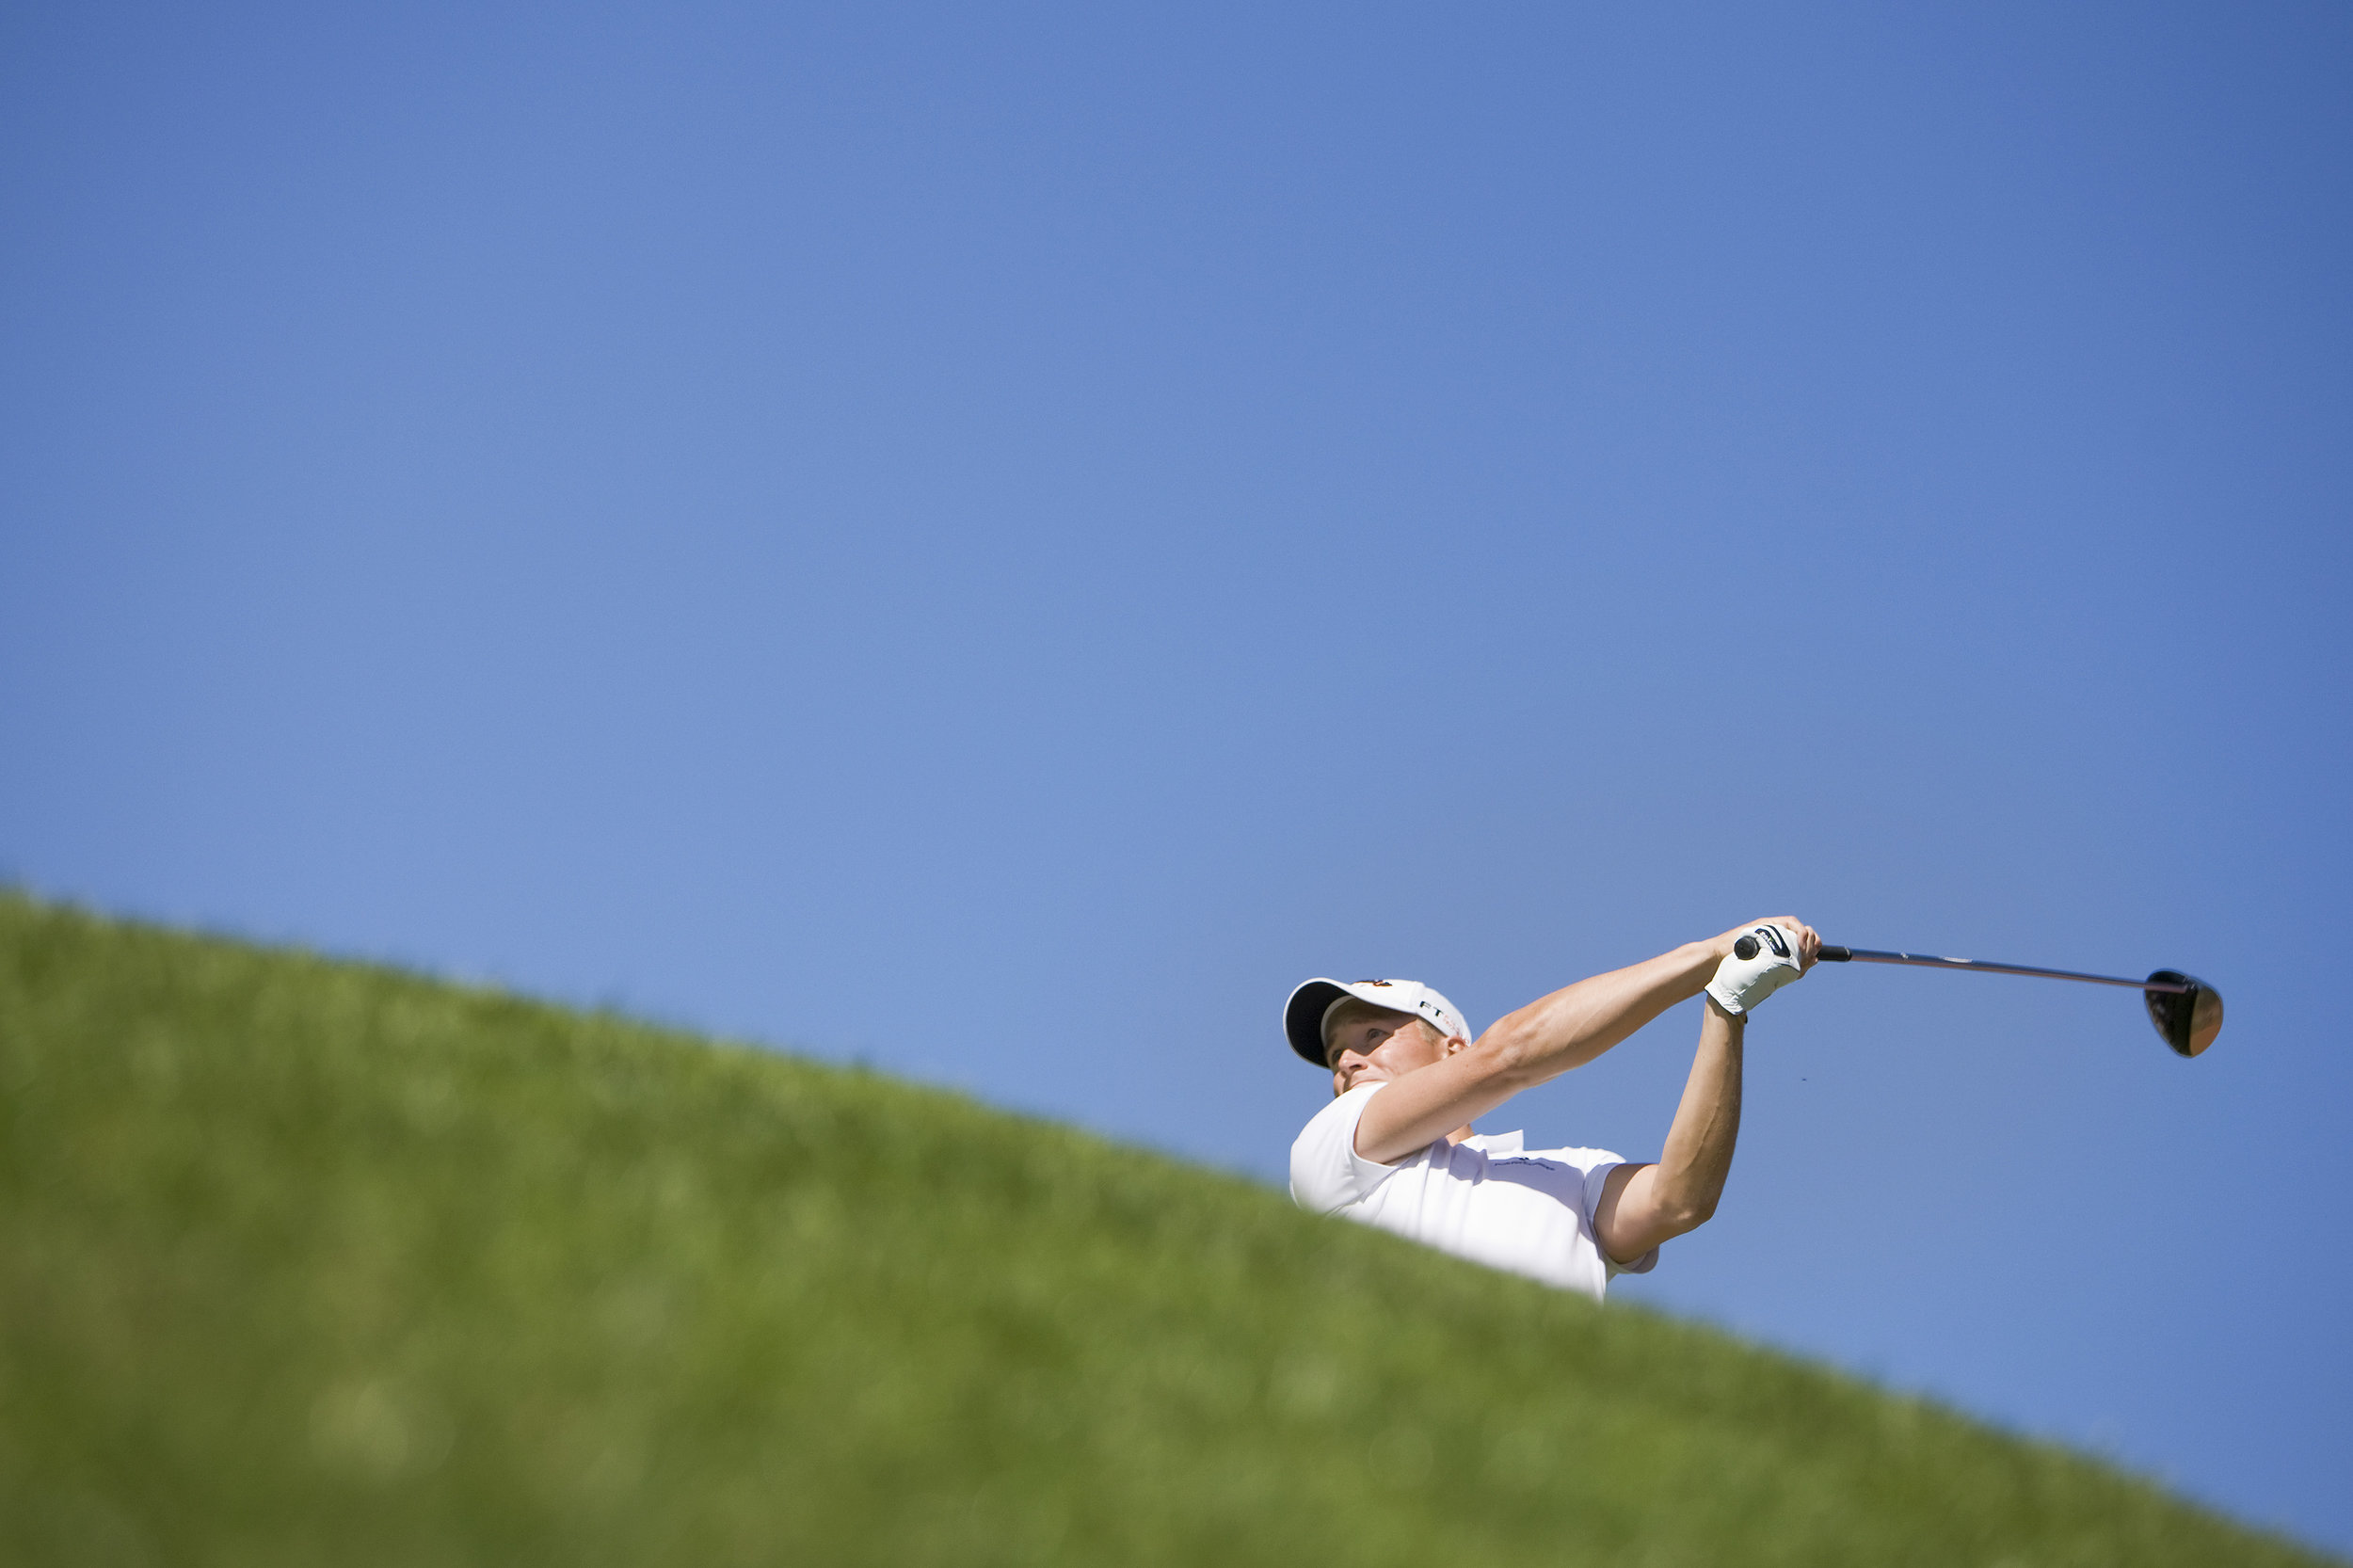 Alexander Noren of Sweden watches his tee shot on the 14th hole during the fourth and final round of the European Masters golf tournament in Crans-Montana September 6, 2009. REUTERS/Valentin Flauraud (SWITZERLAND)